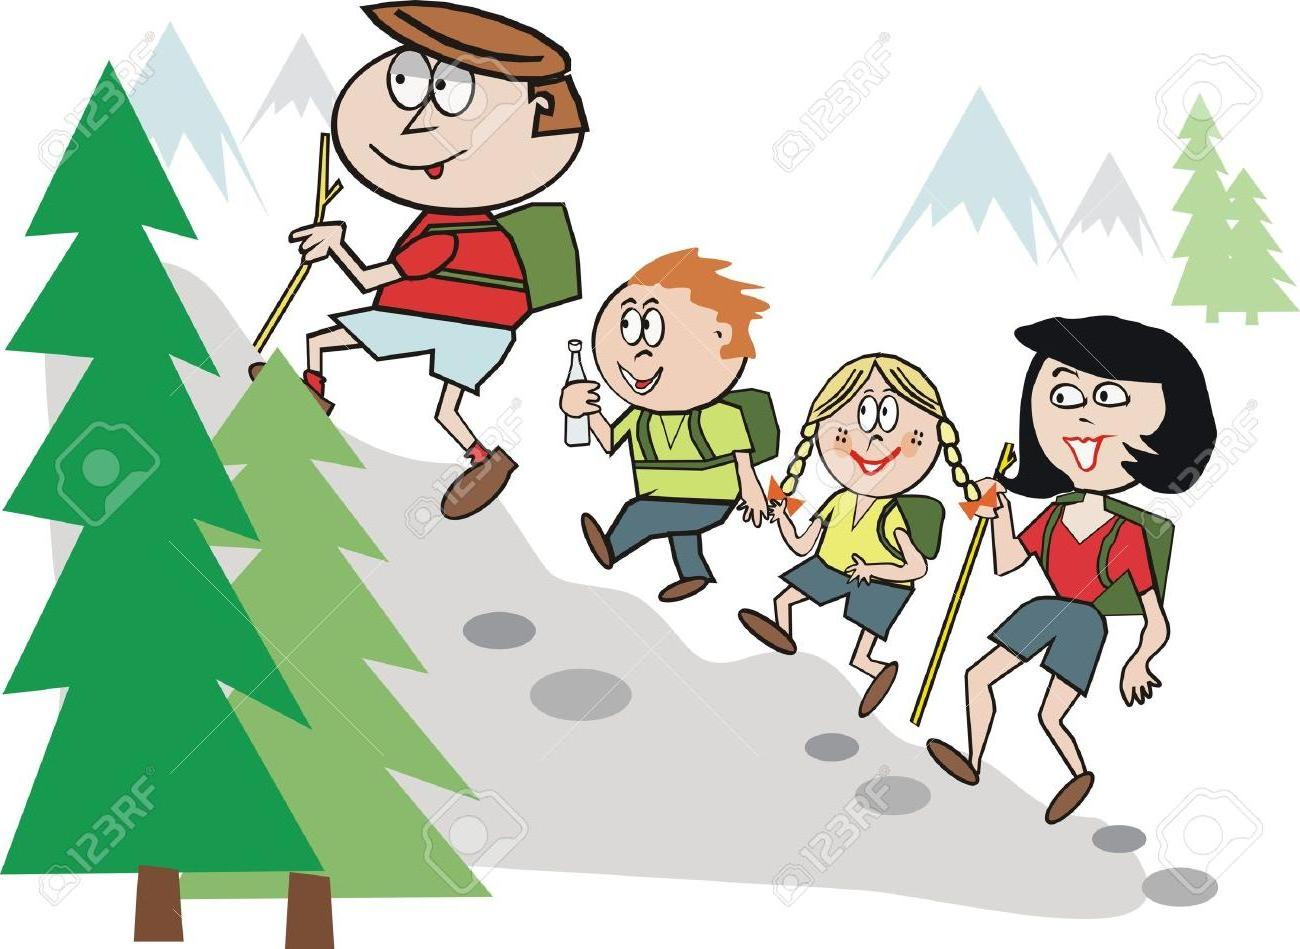 Hiking images clipart stock HD Hiking In Snow Clip Art Library » Free Vector Art, Images ... stock